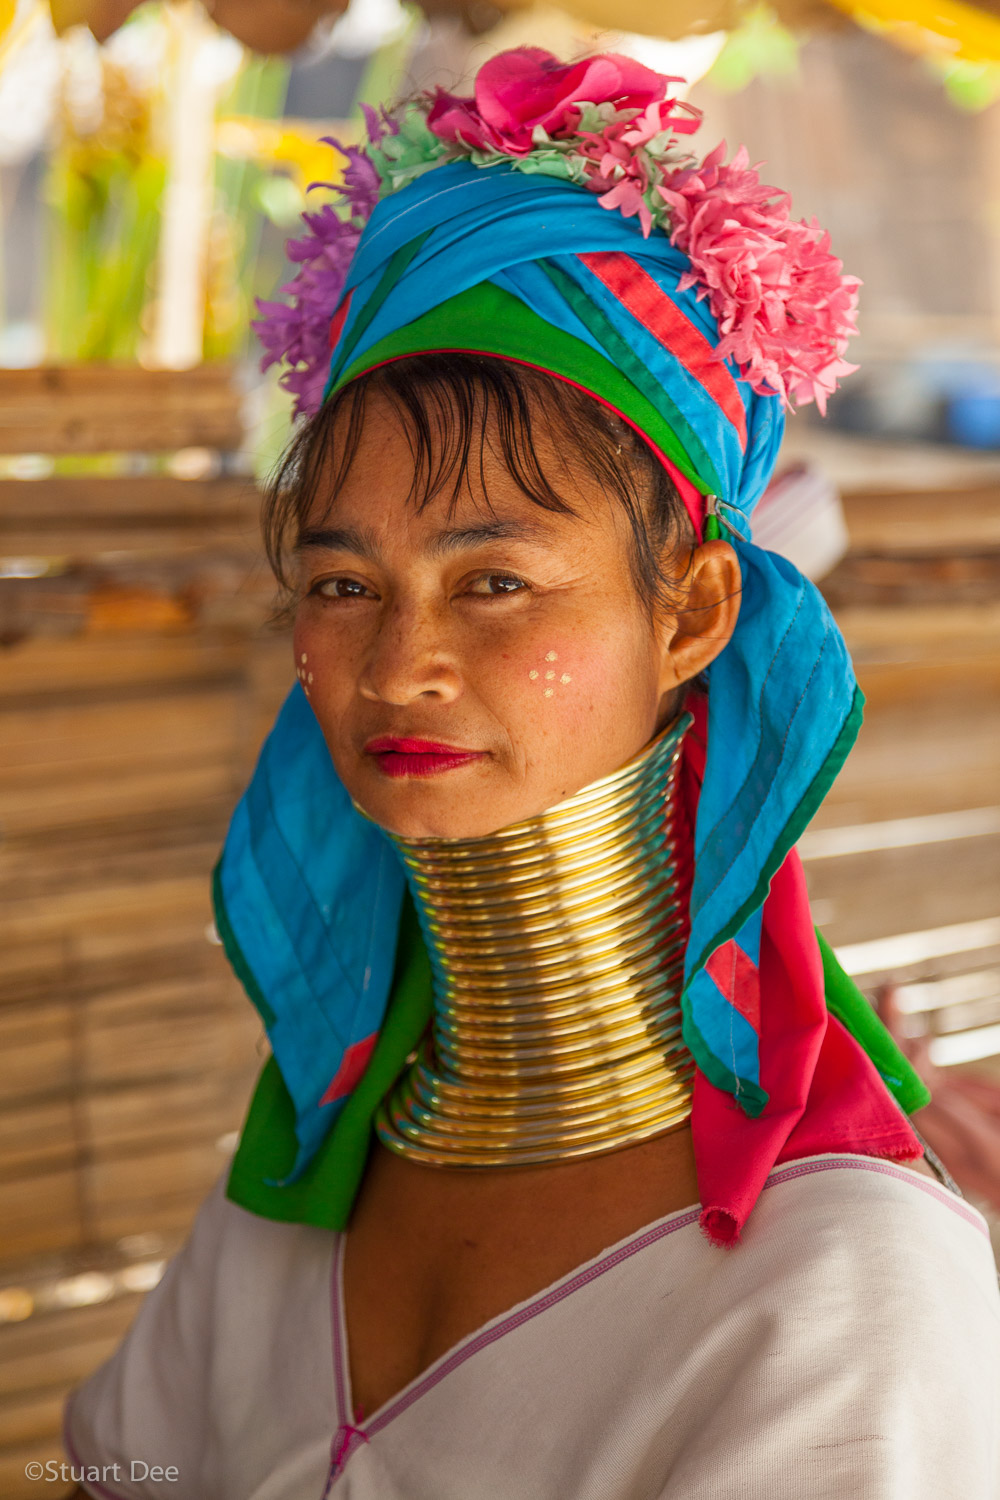 Hill tribe village, near Chiang Mai, Thailand. Padaung long neck woman with brass rings. The Padaung are a subset of the Karen hill tribe people.